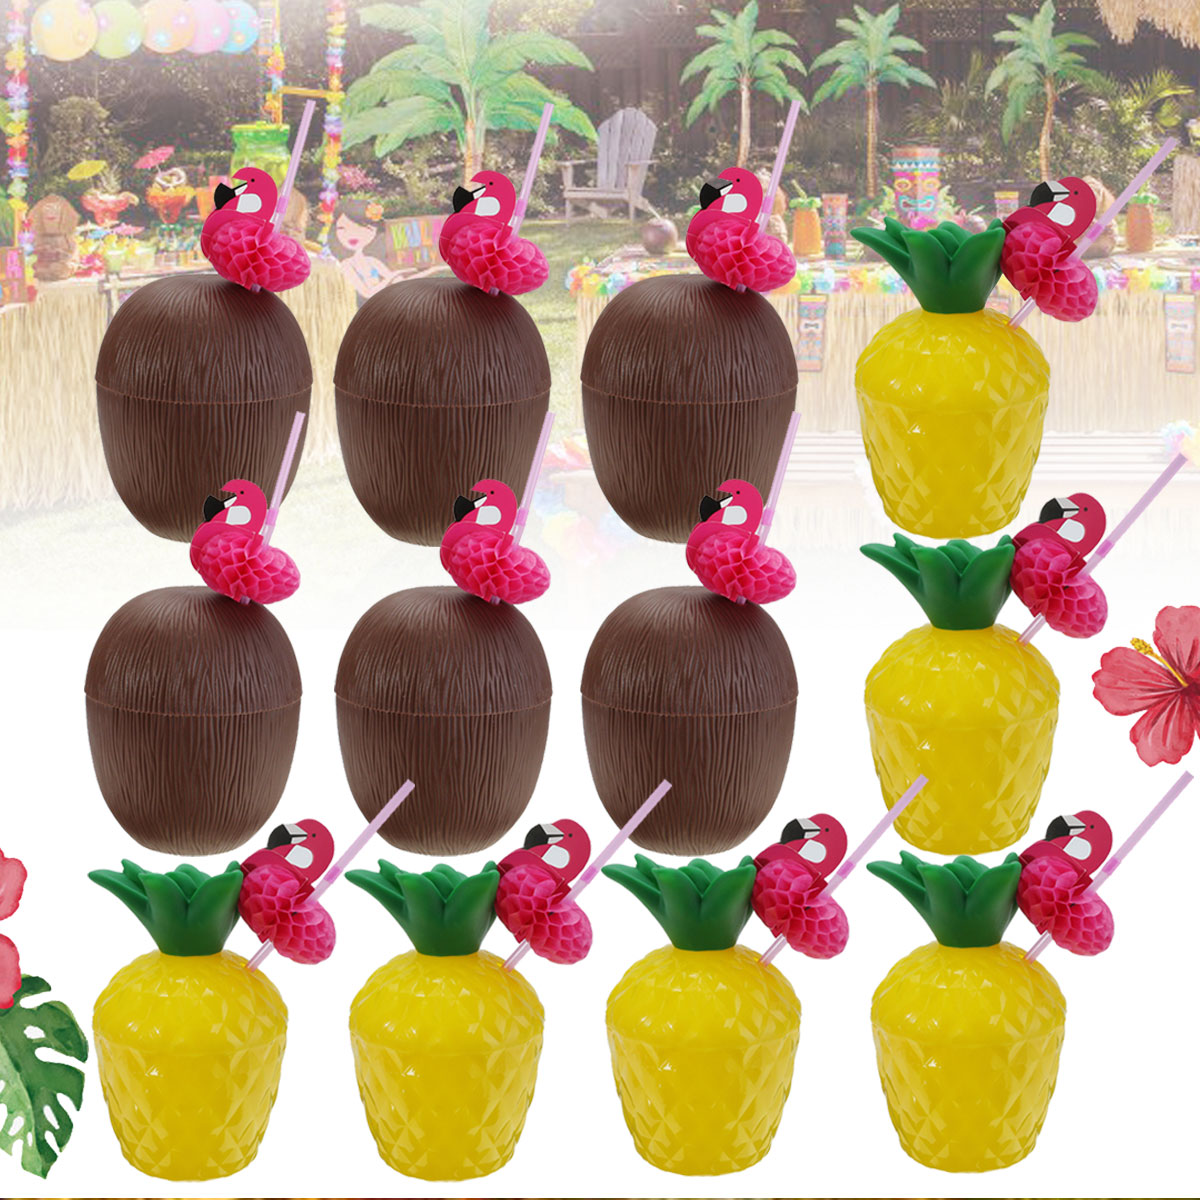 12pcs Water Bottle Decor Plastic Cup Fruit Coconut Pineapple Drink Cup With Bird Decoration Drinking Straw for Party